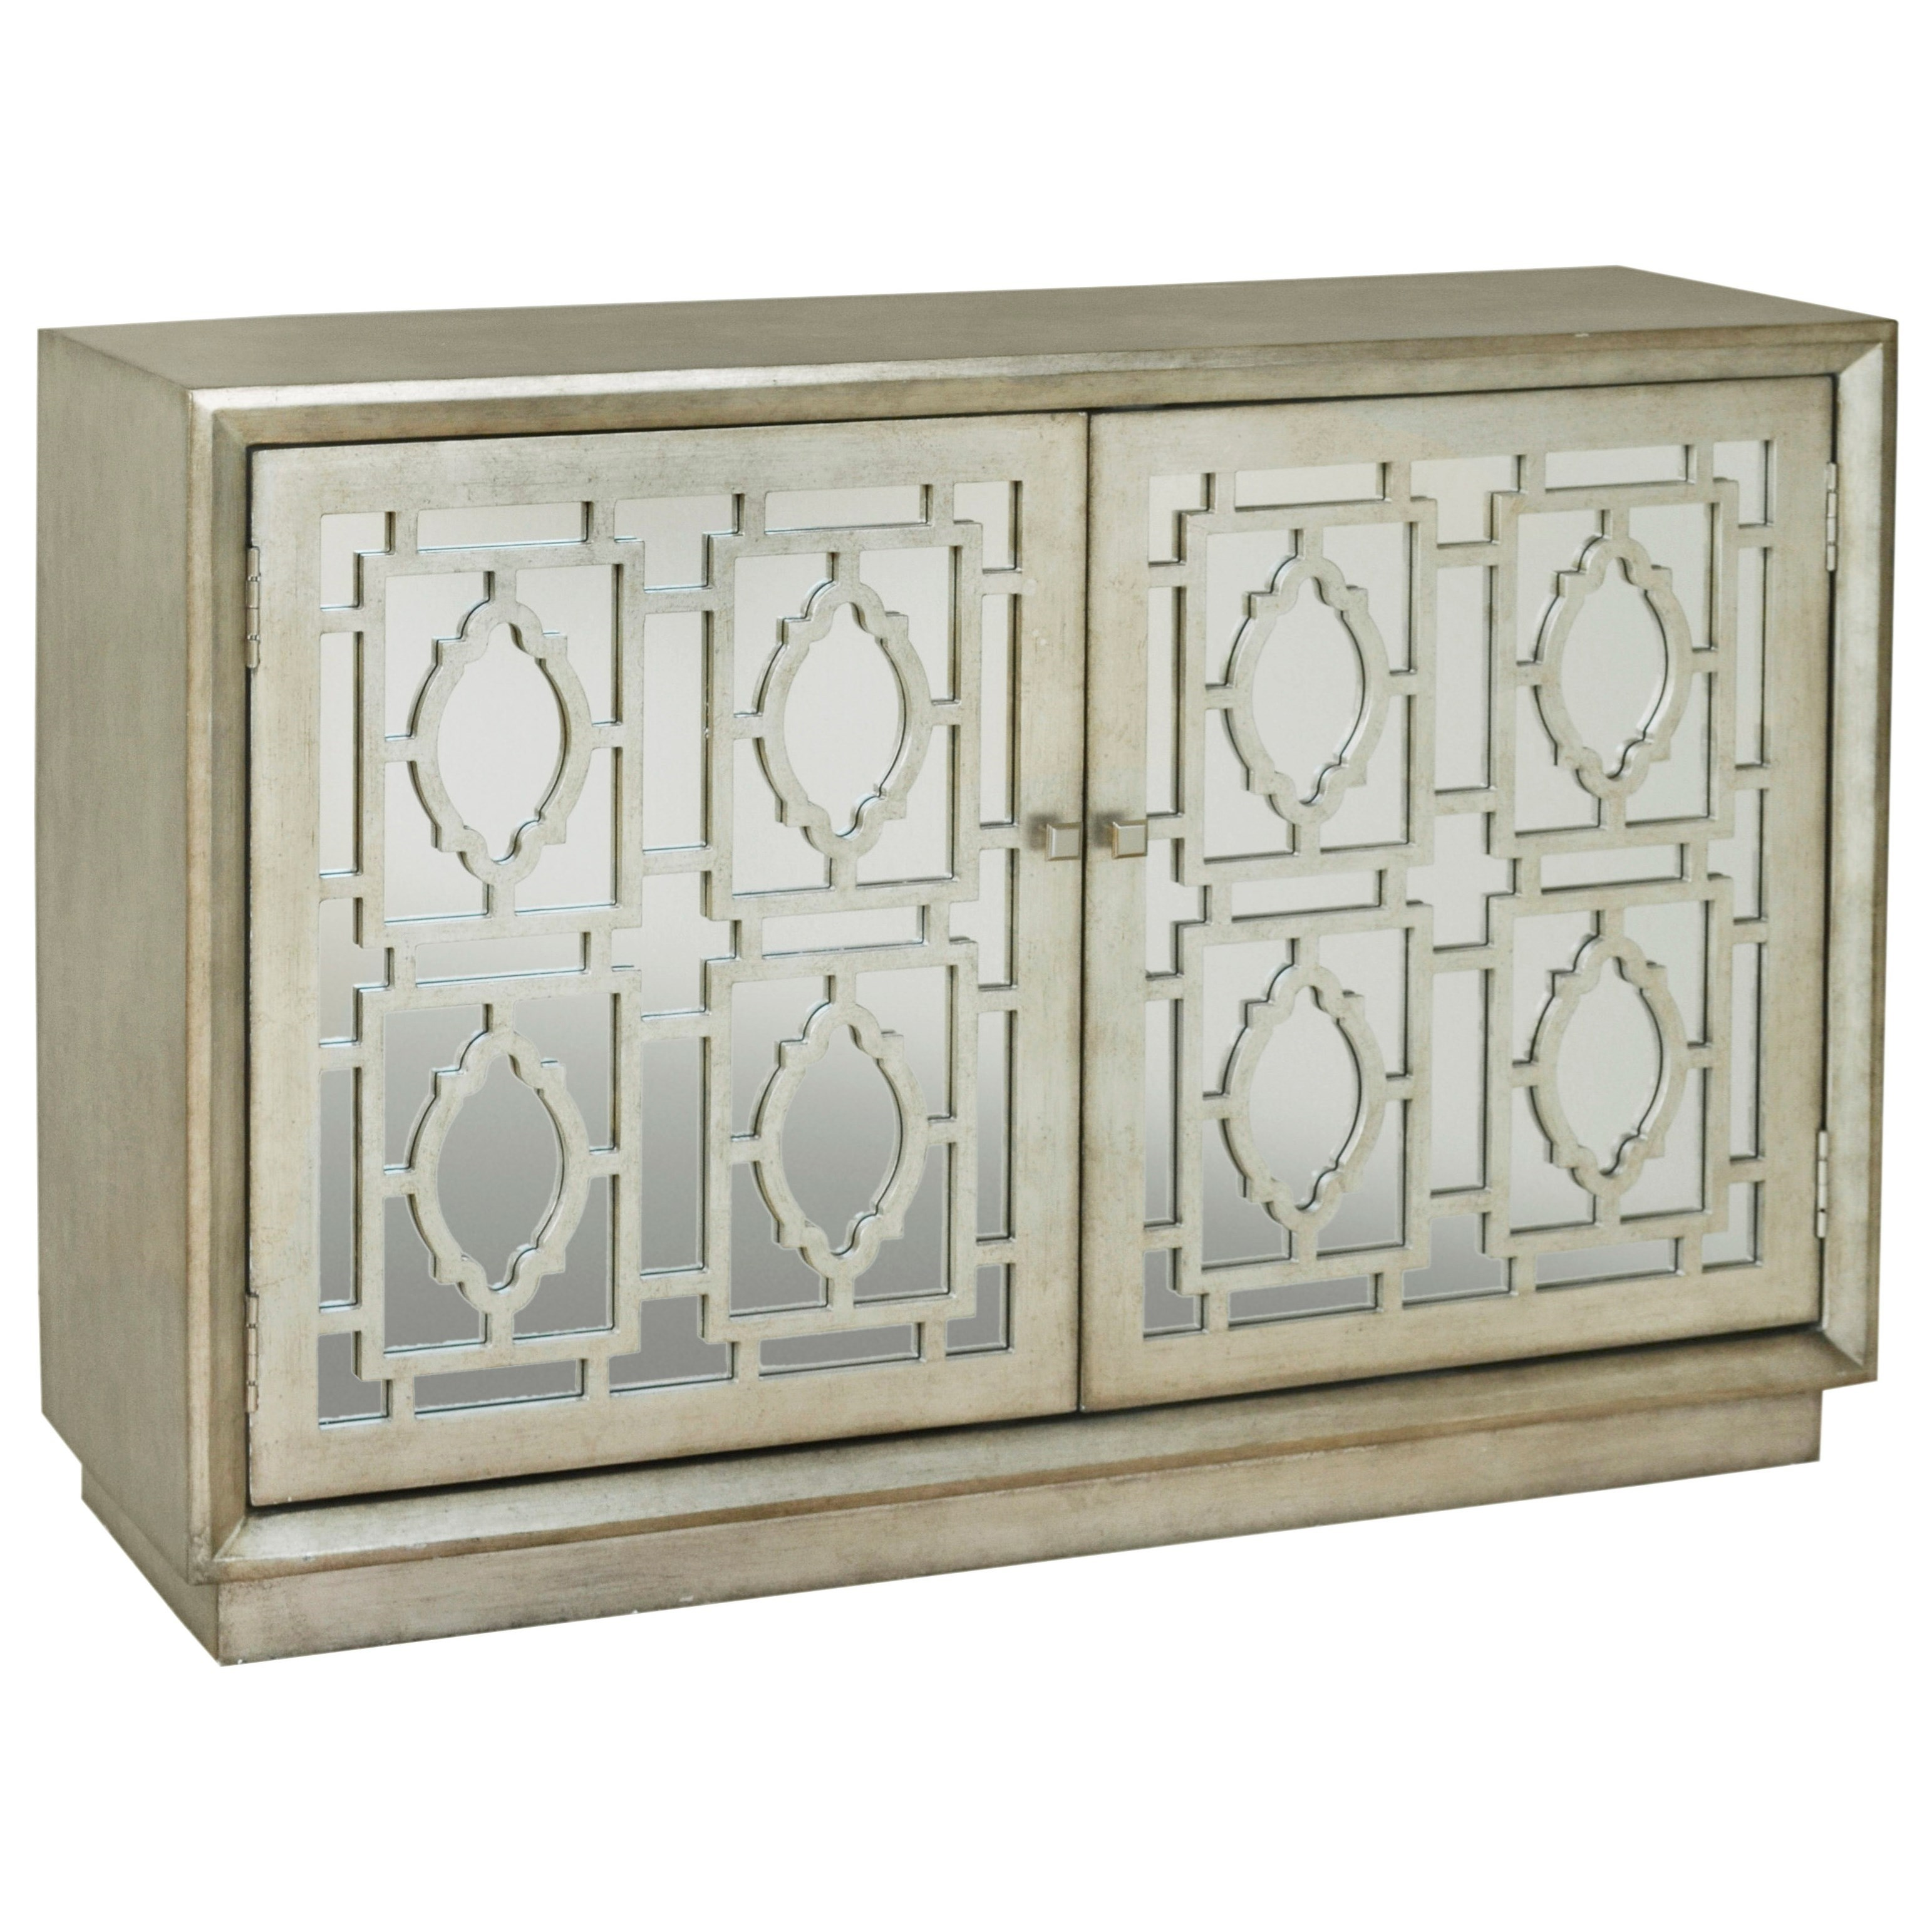 Pulaski Furniture Accents Credenza - Item Number: 766039